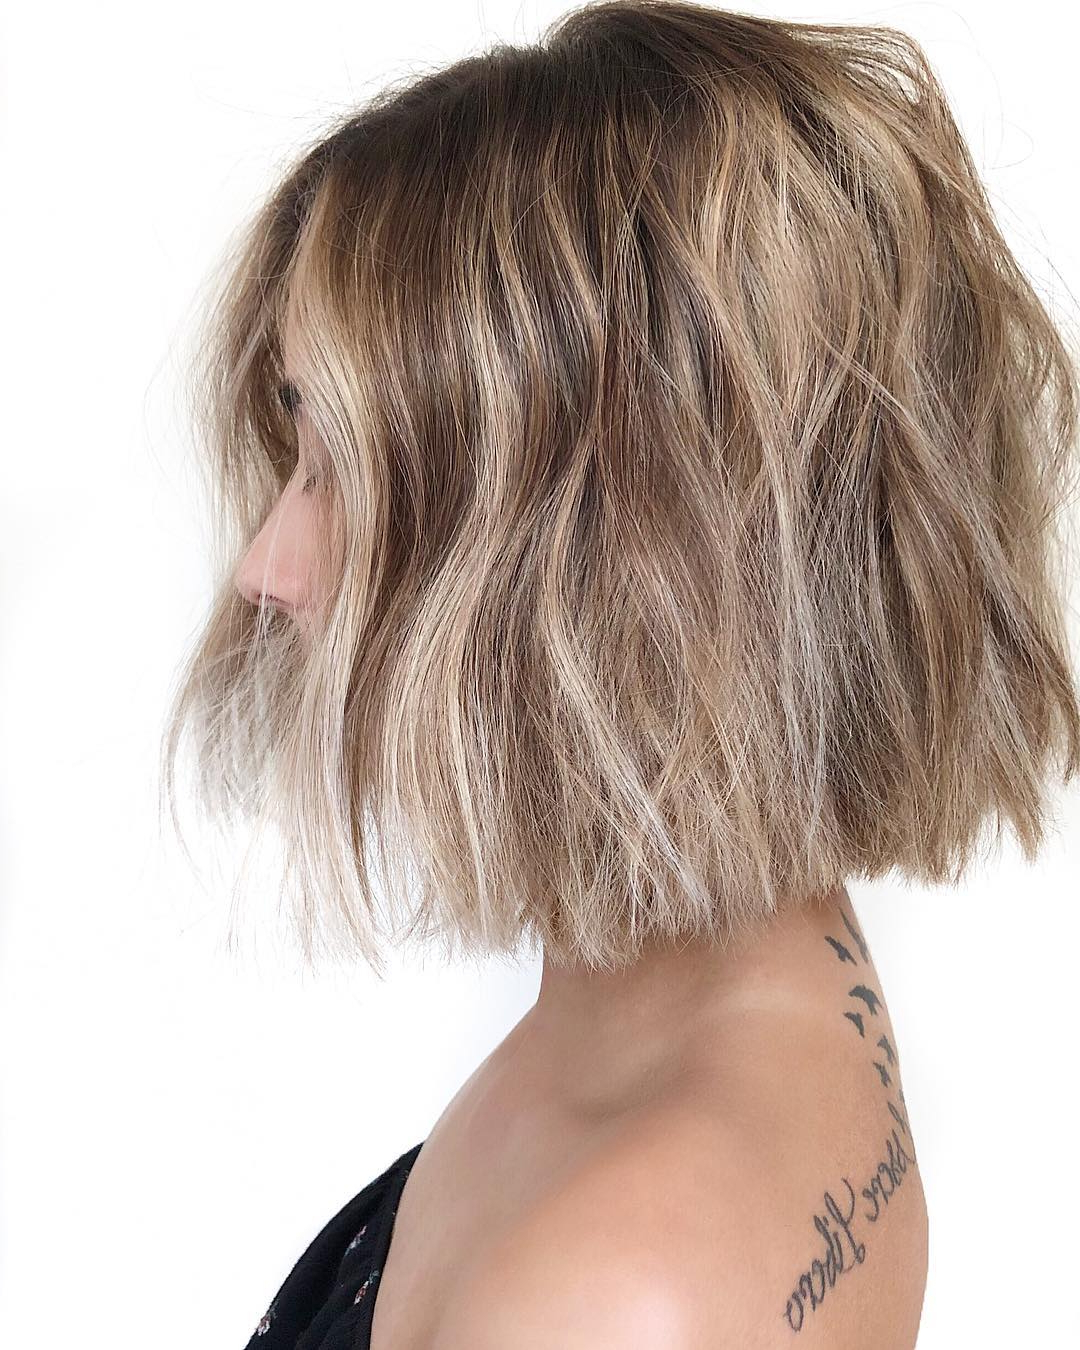 10 Trendy Messy Bob Hairstyles And Haircuts, 2019 Female Short Hair Regarding Messy Honey Blonde Bob Haircuts (View 5 of 20)